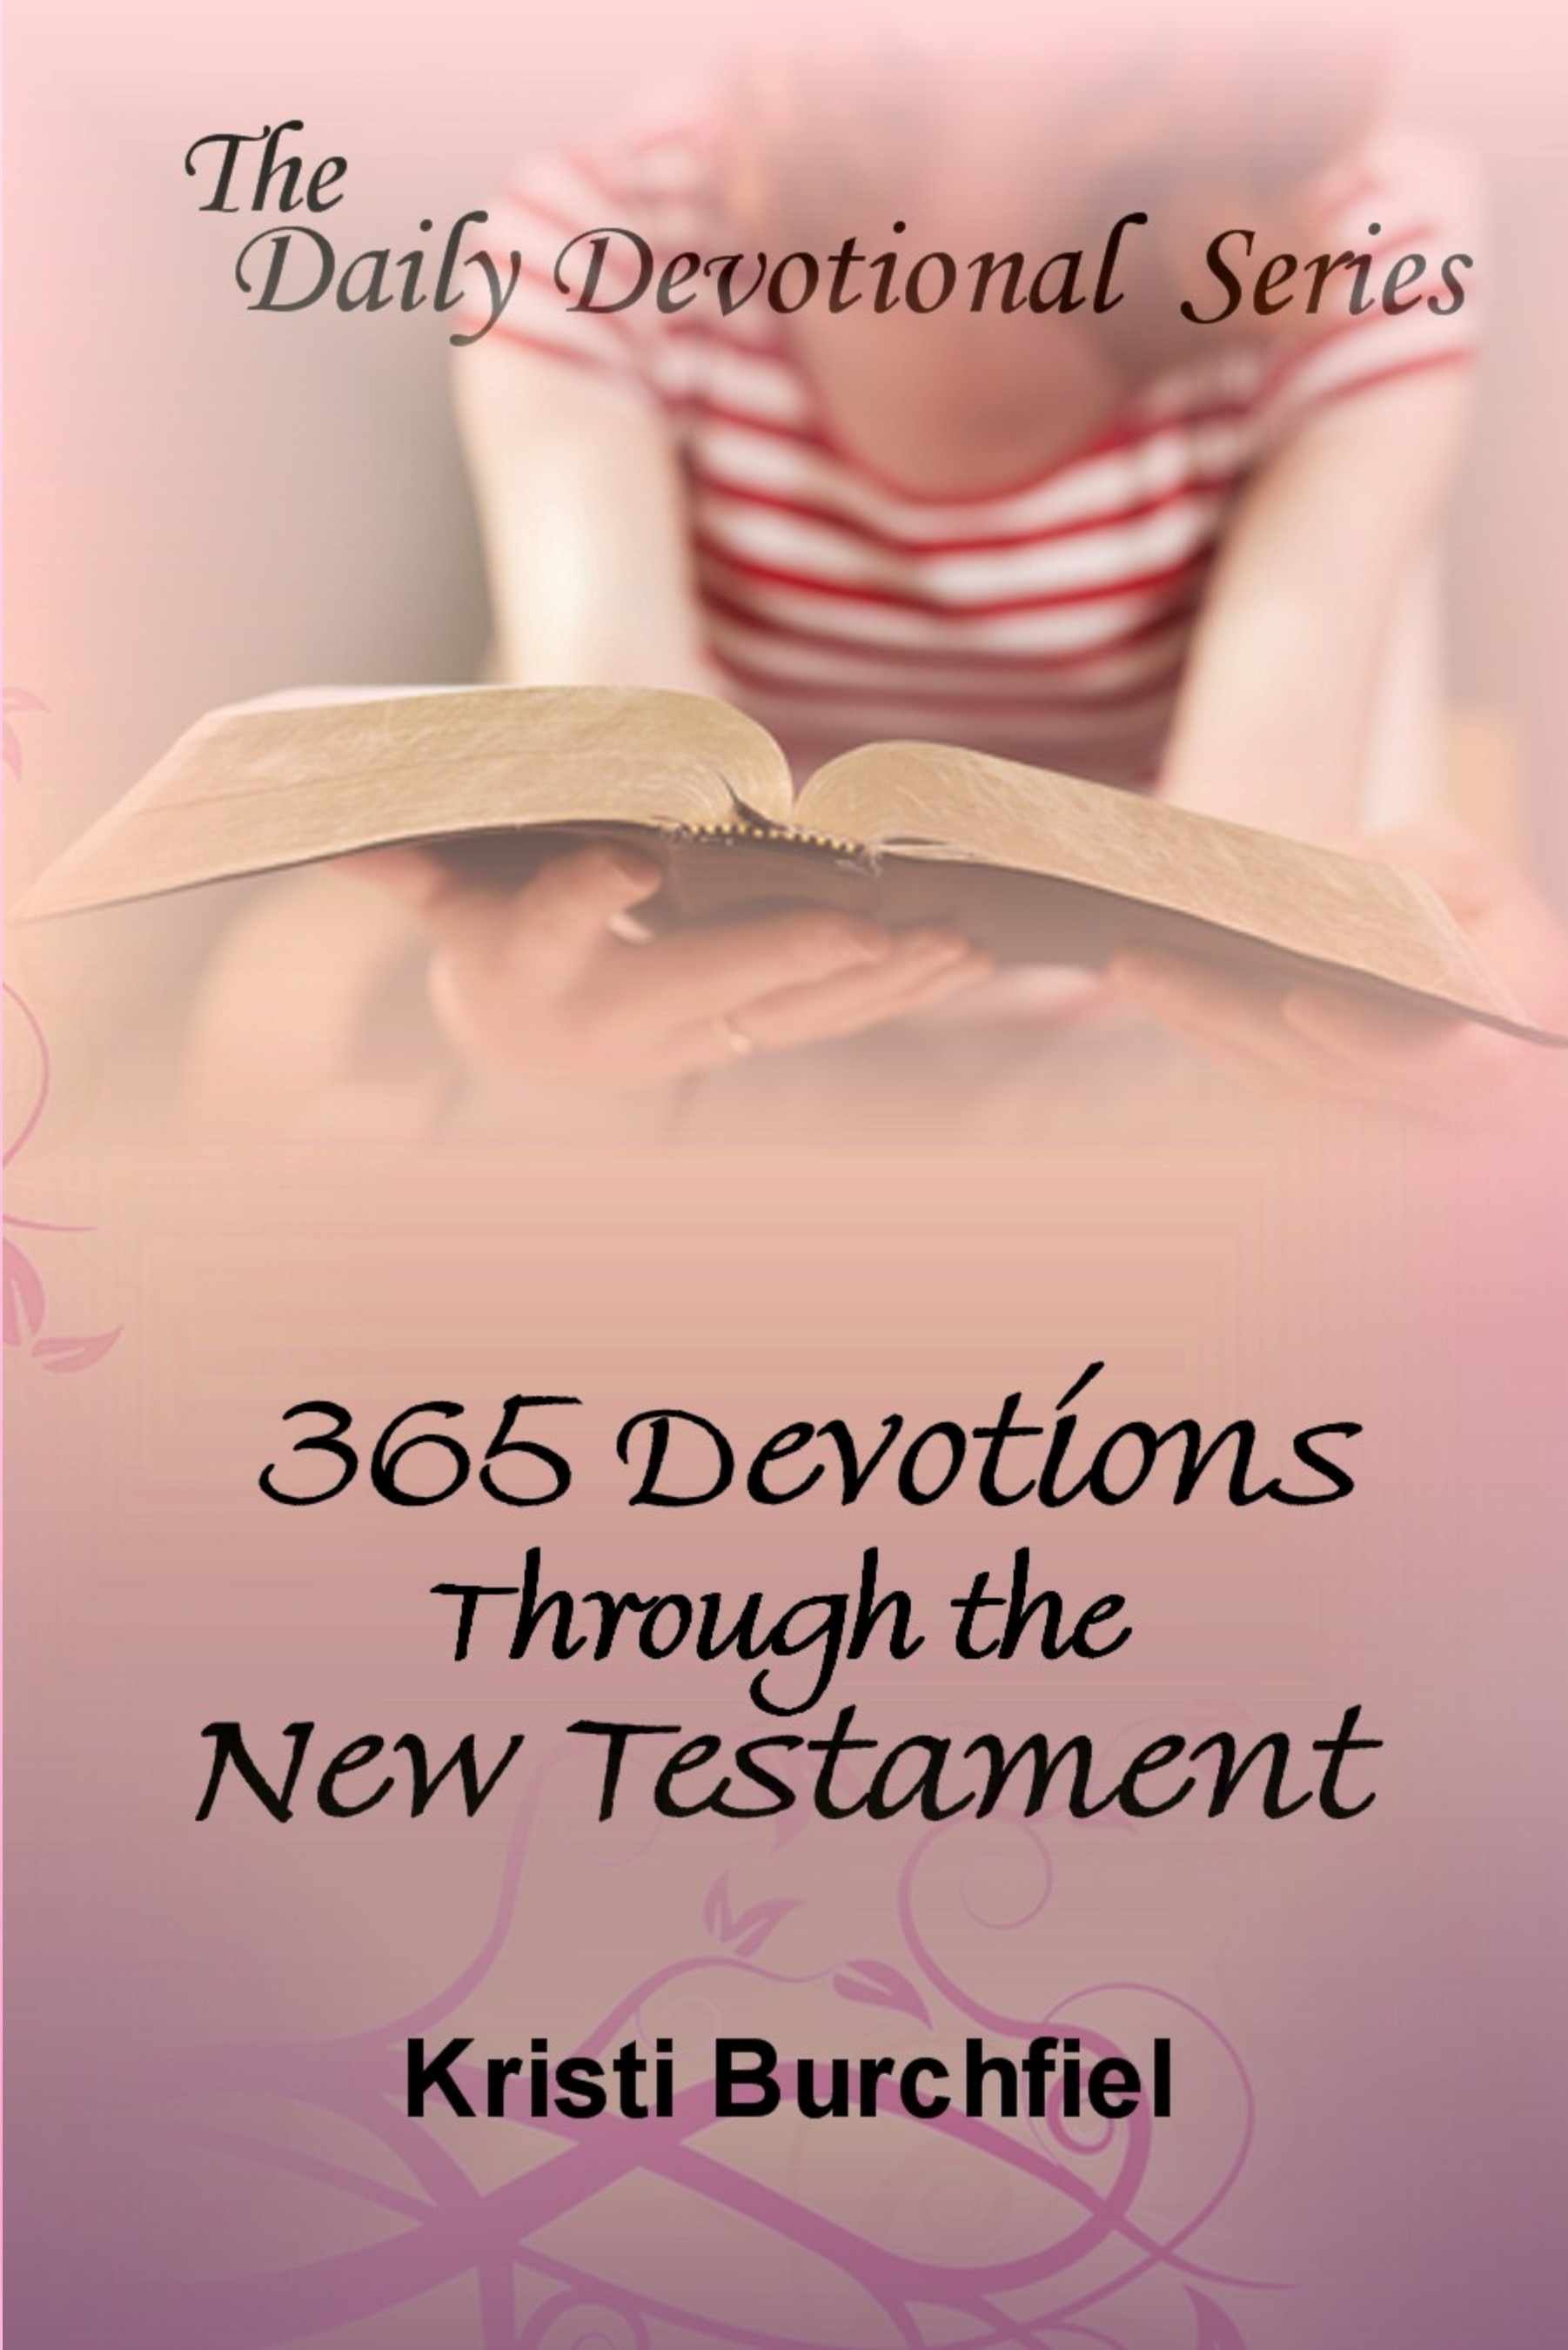 The Daily Devotional Series: 365 Devotions Through the New Testament